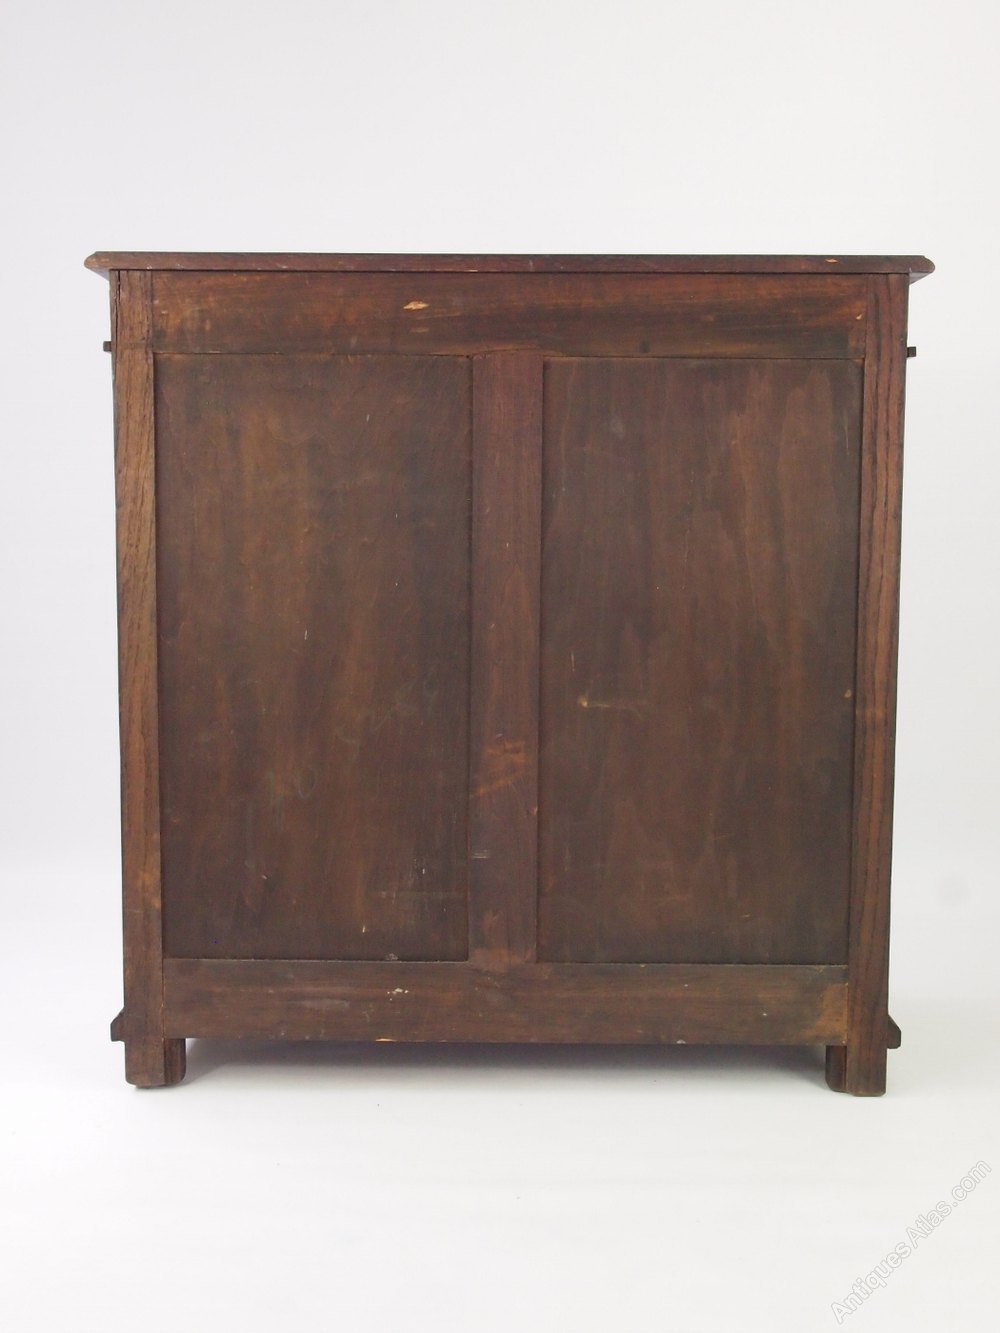 ... Cupboard Antique Hall Cupboards ... - Oak Shoe Cabinet - Small Hall Cupboard - Antiques Atlas